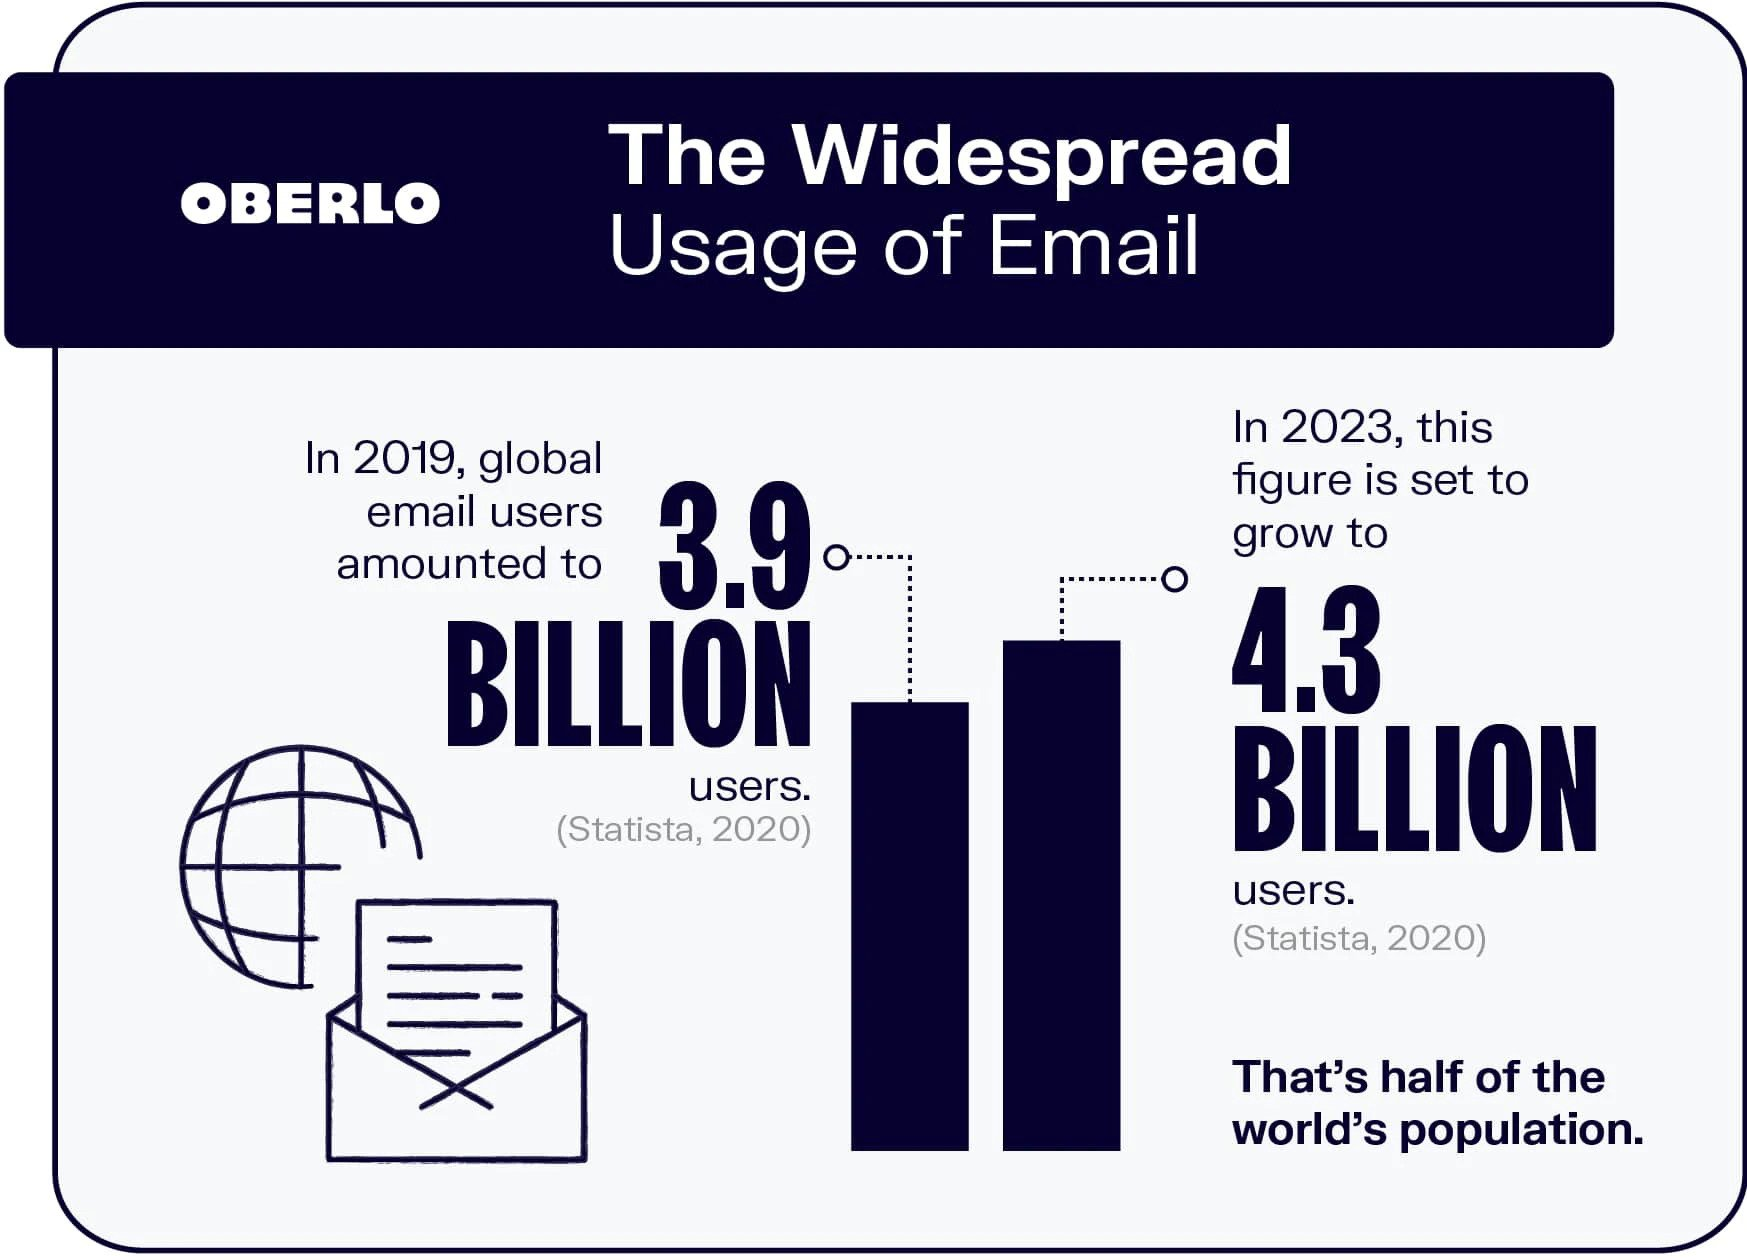 Image contains statistics showing the predicted increase in the number of email users between 2019 and 2023